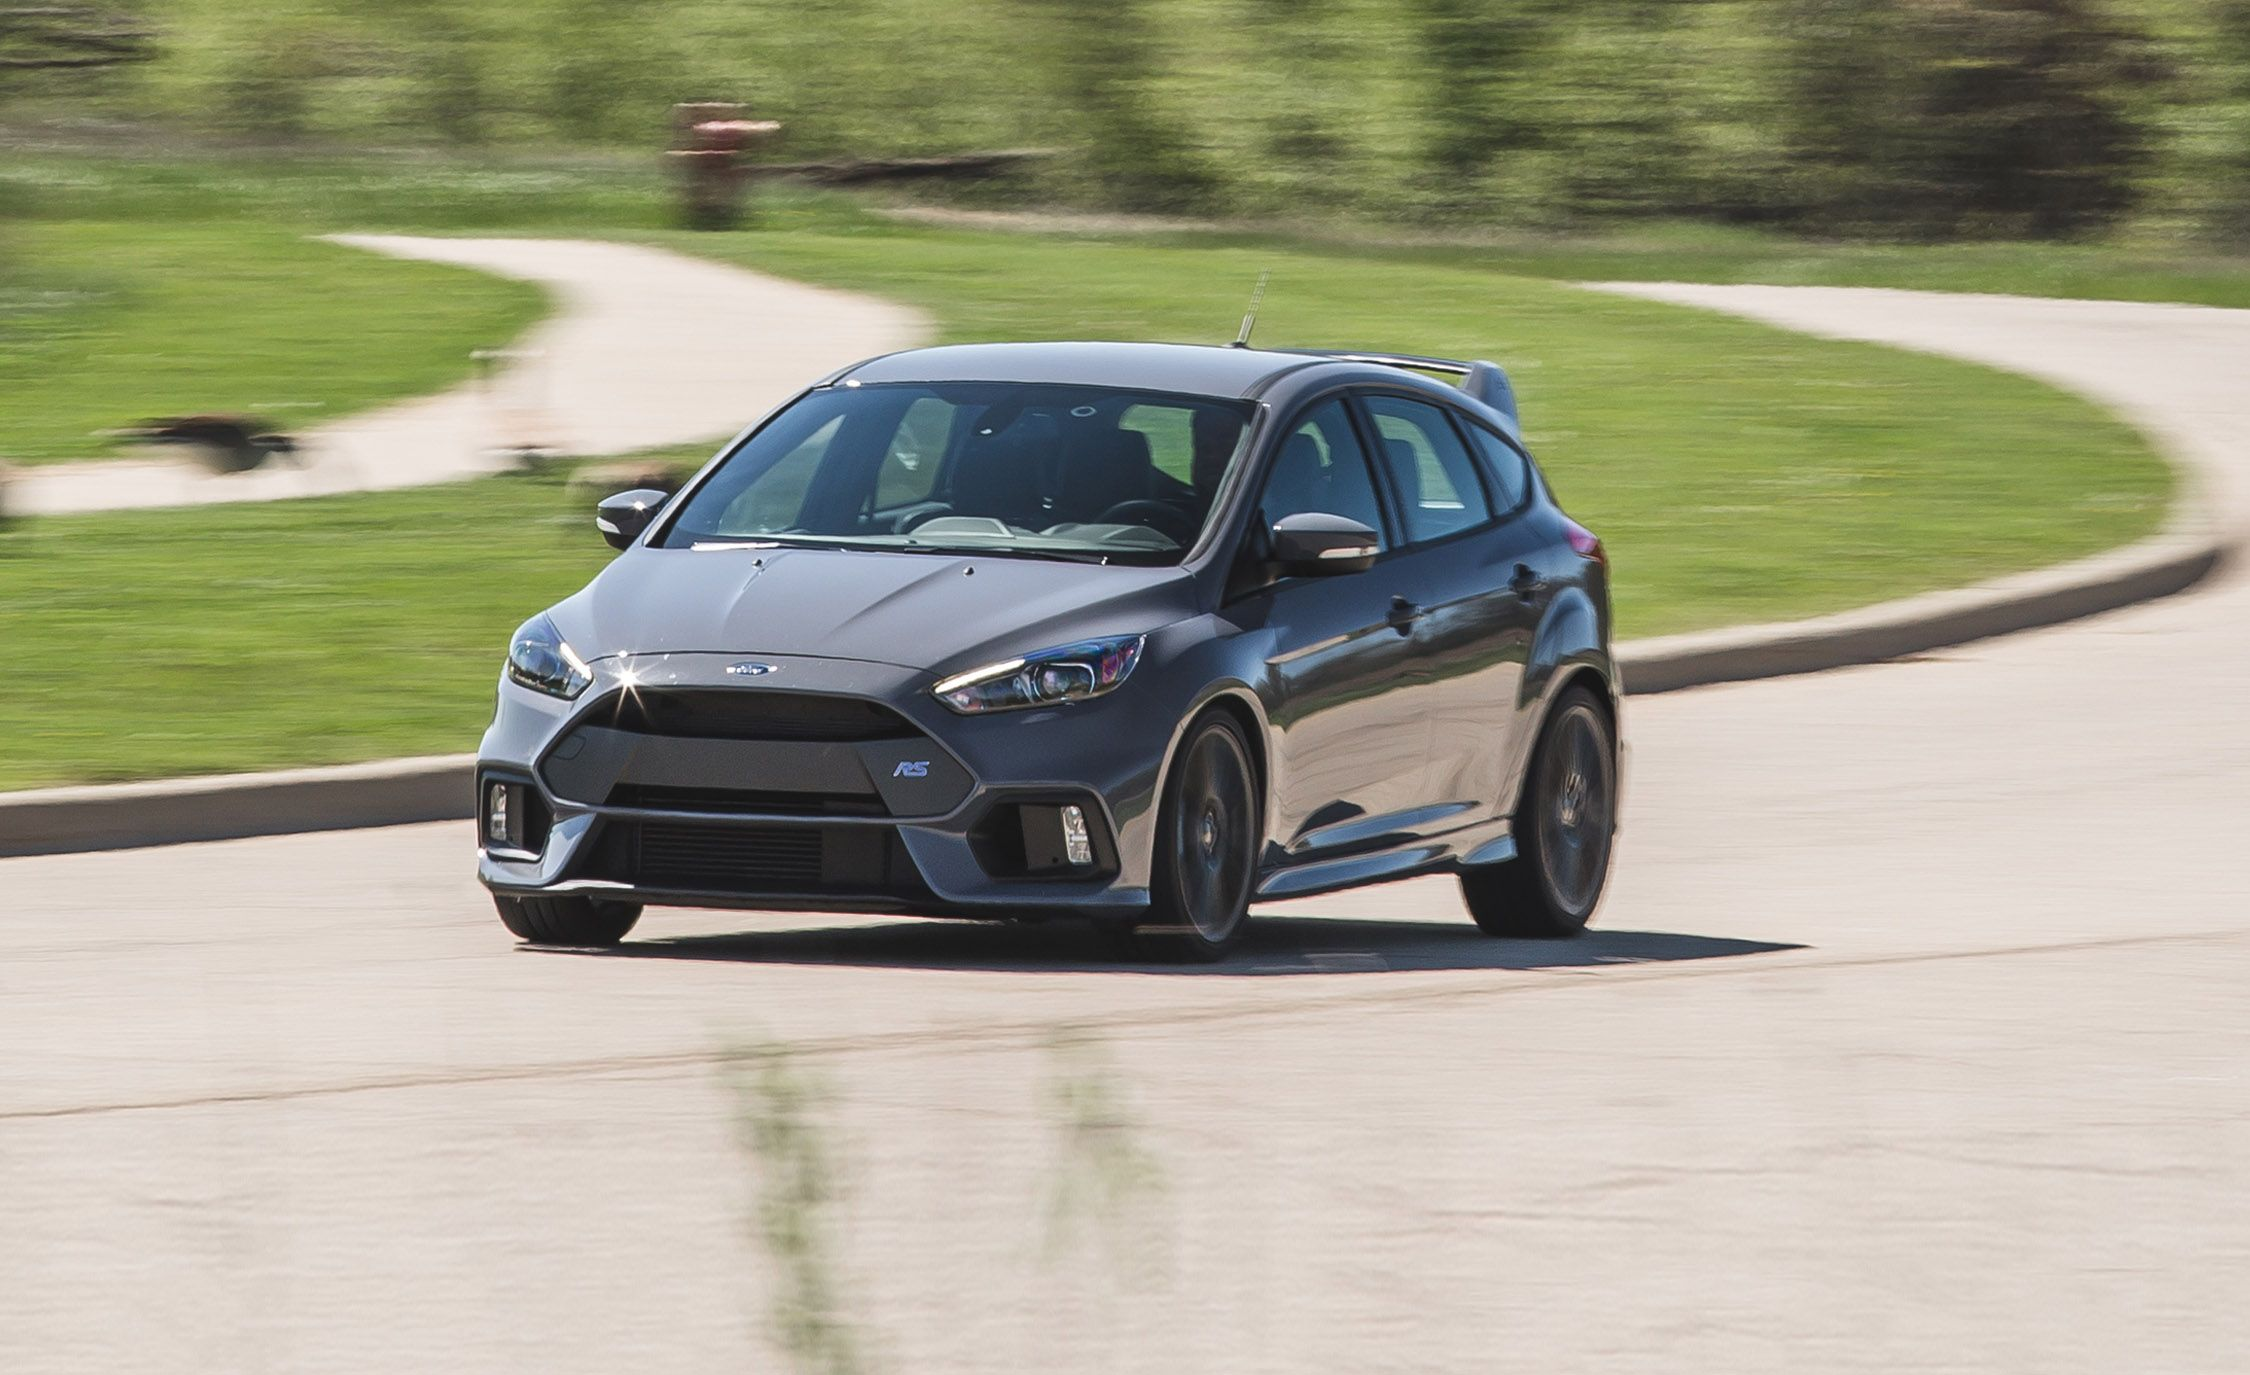 Ford Focus Rs Reviews Price Photos And Specs Car 2014 Suspension 2018